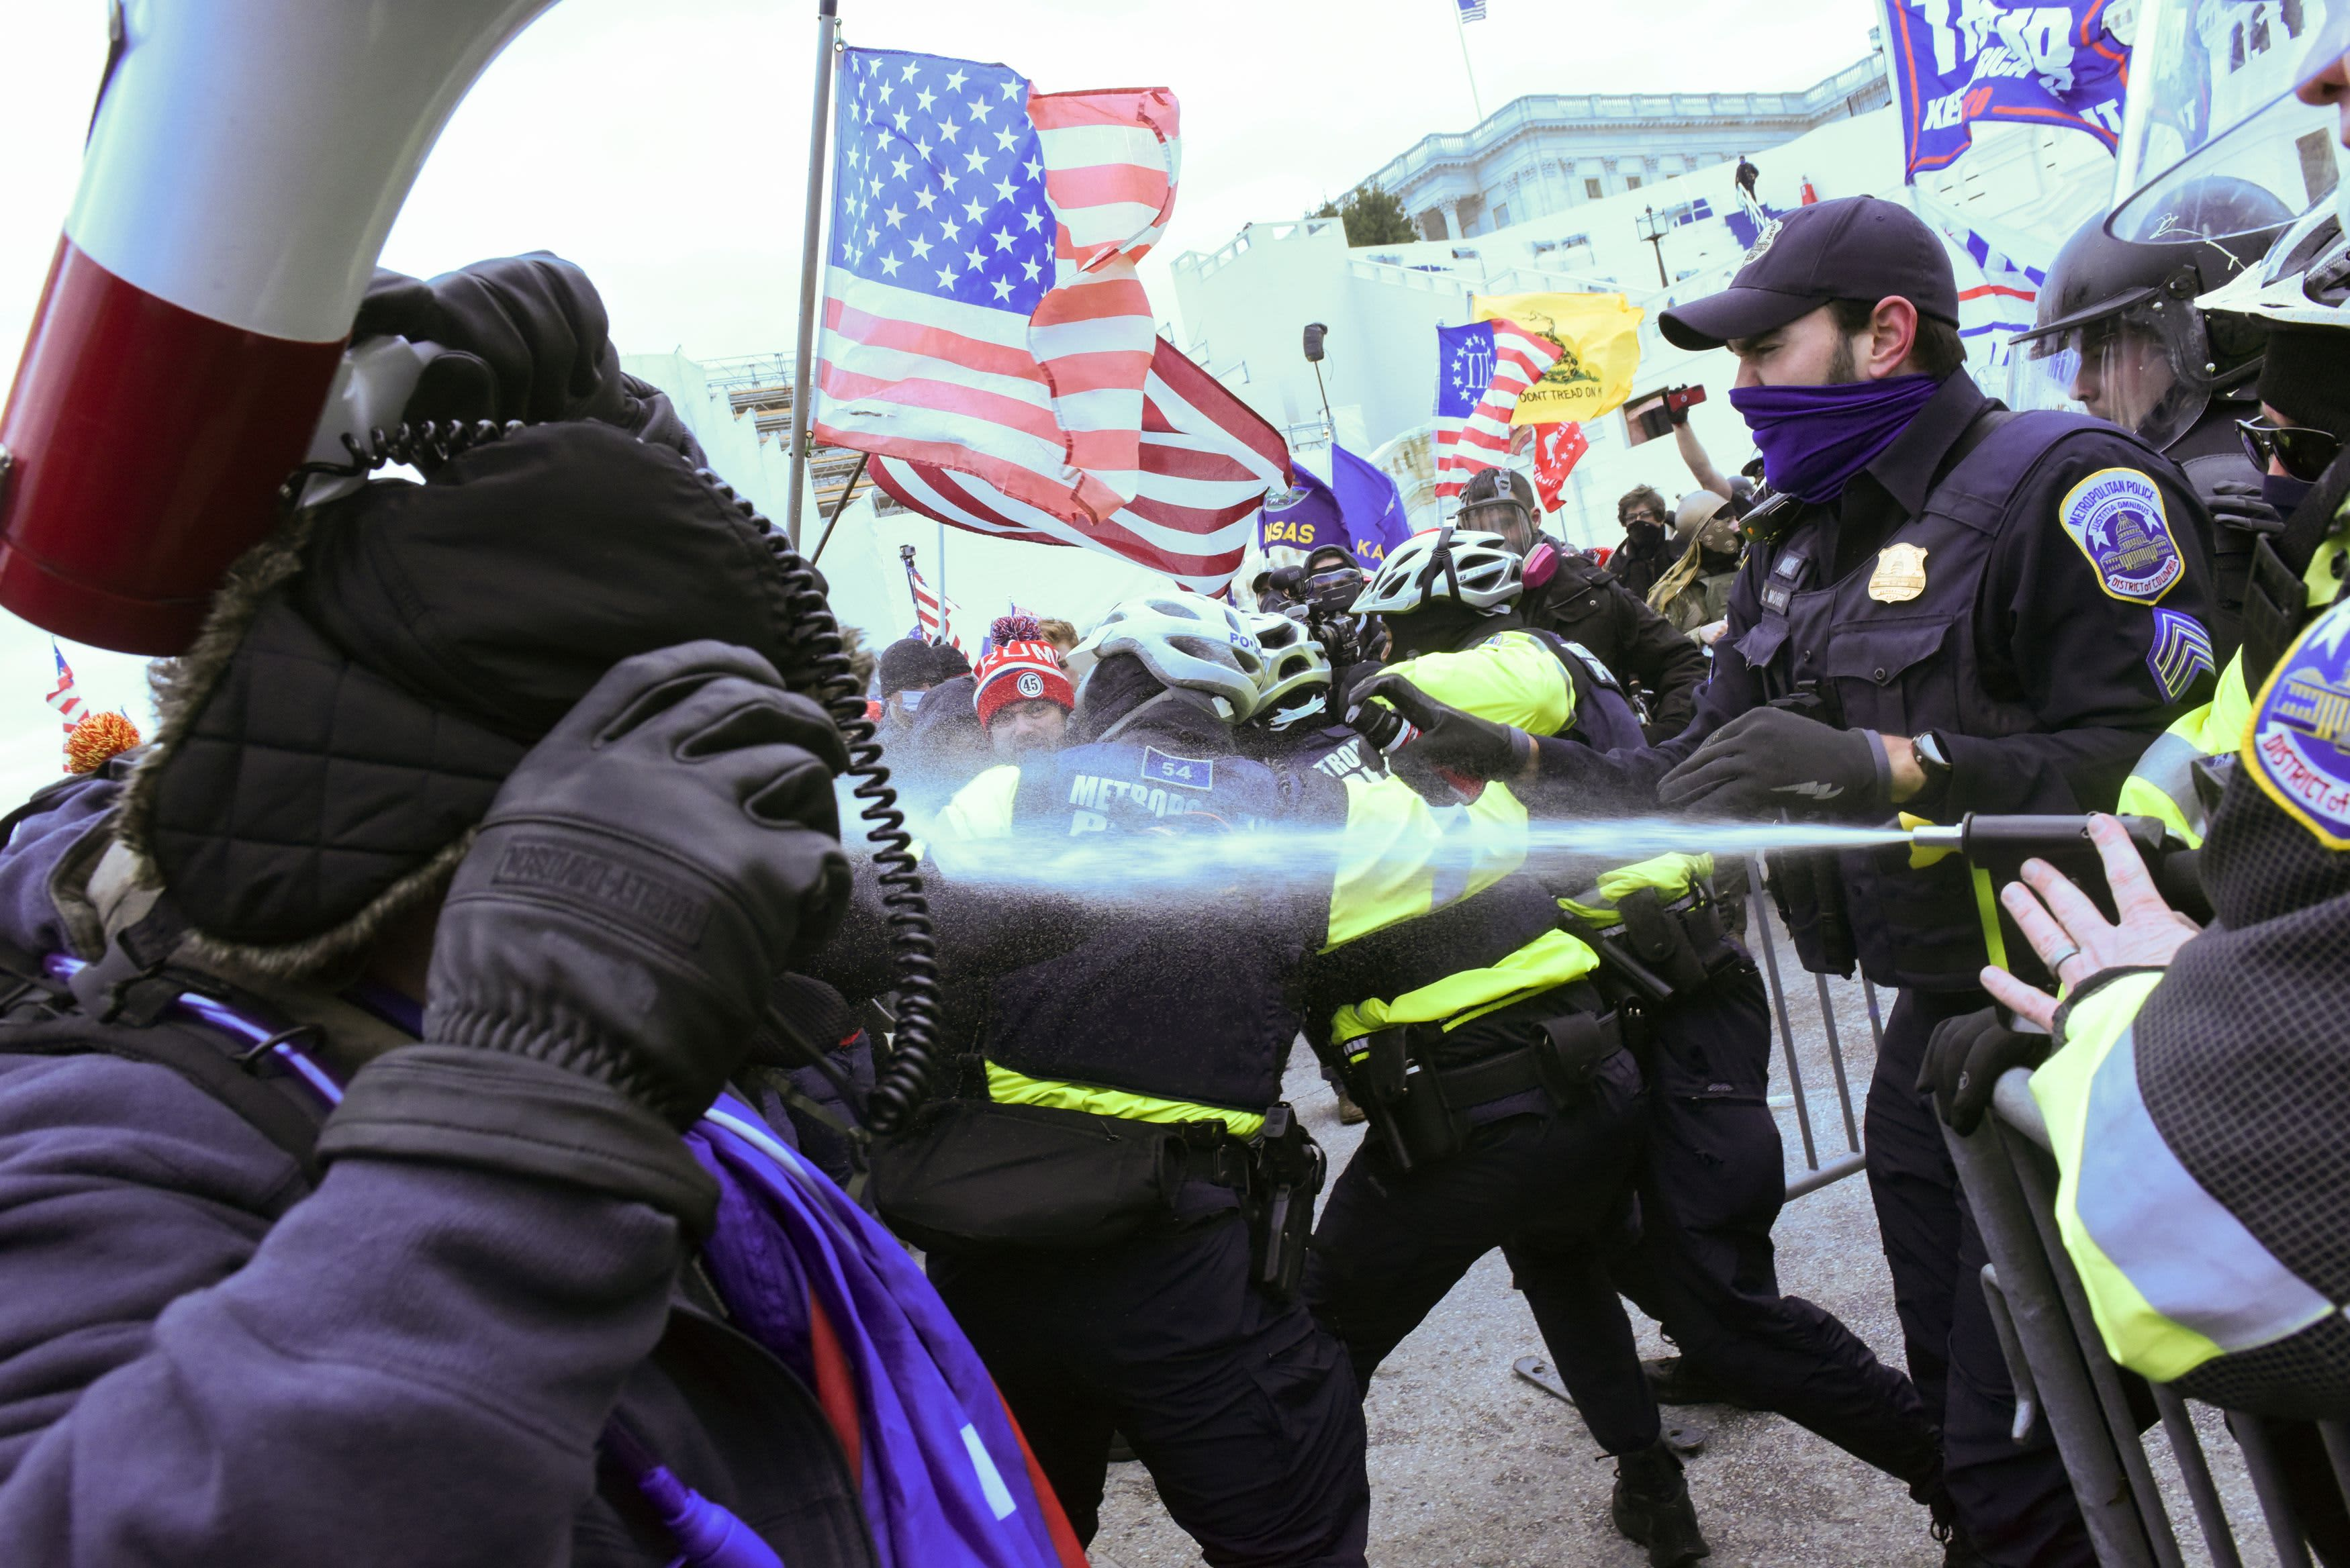 Violent clashes break out as Trump supporters storm the U.S. Capitol